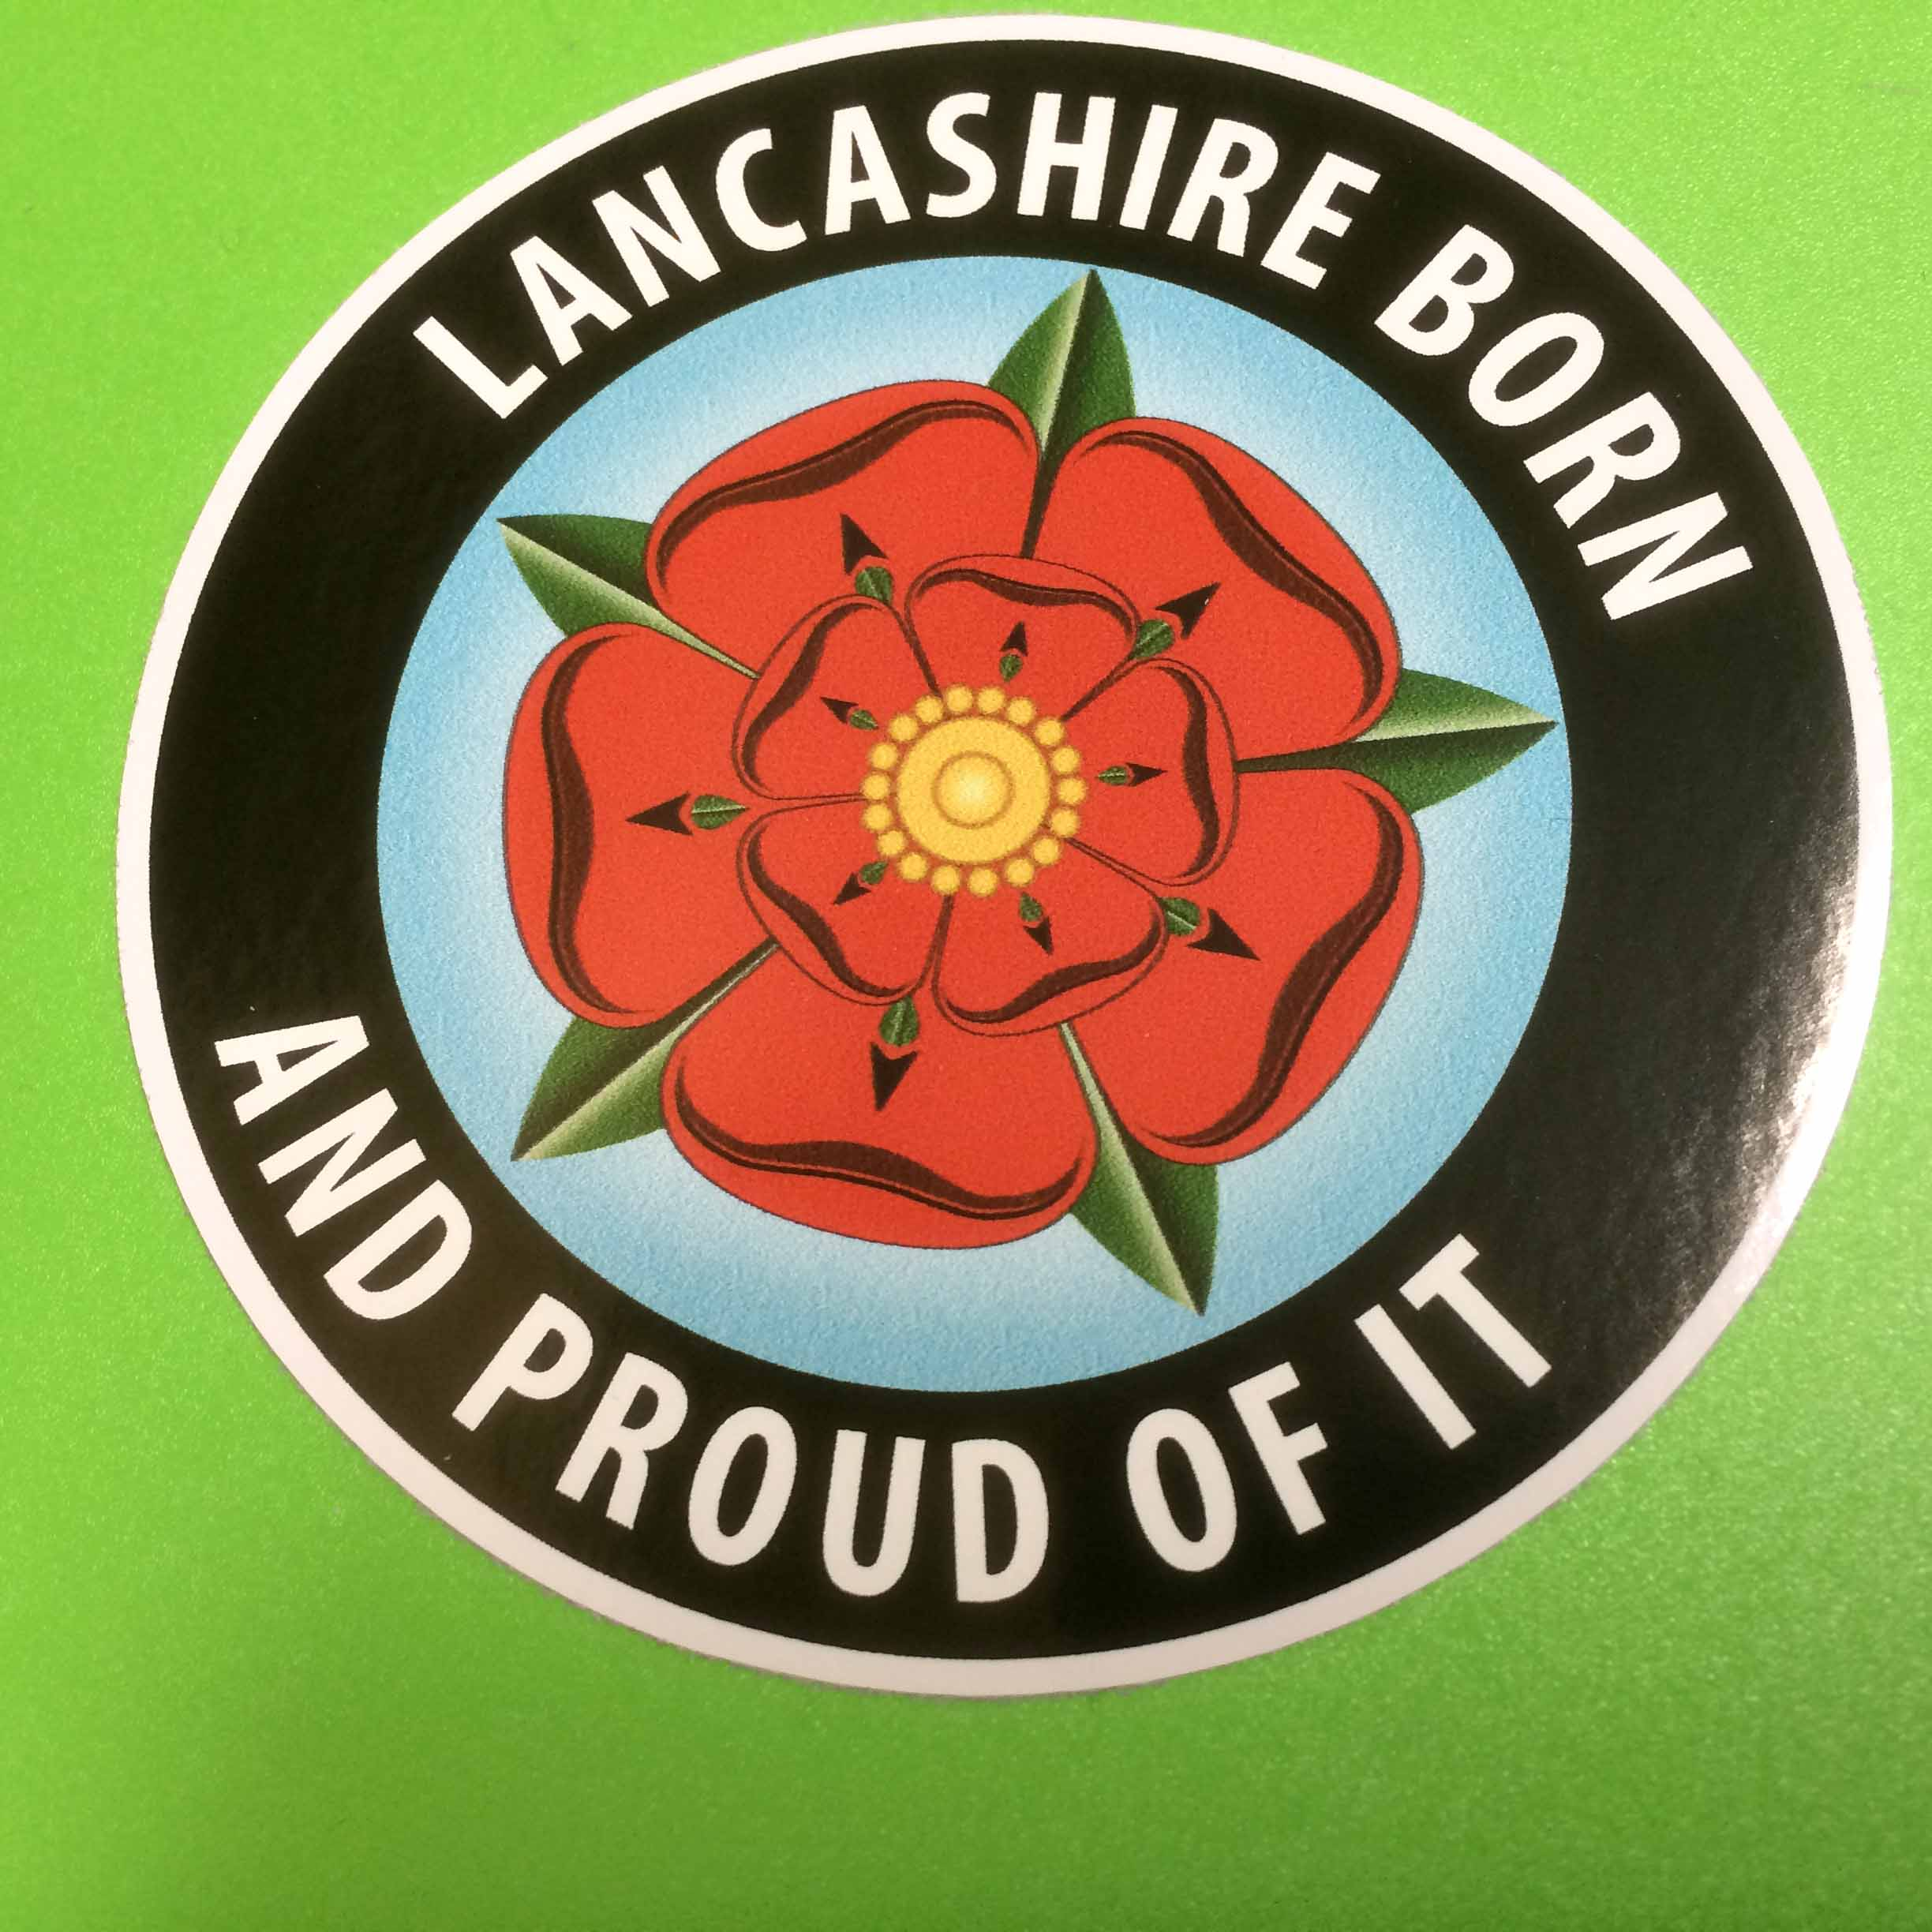 LANCASHIRE BORN & PROUD STICKER, with the red rose of Lancashire